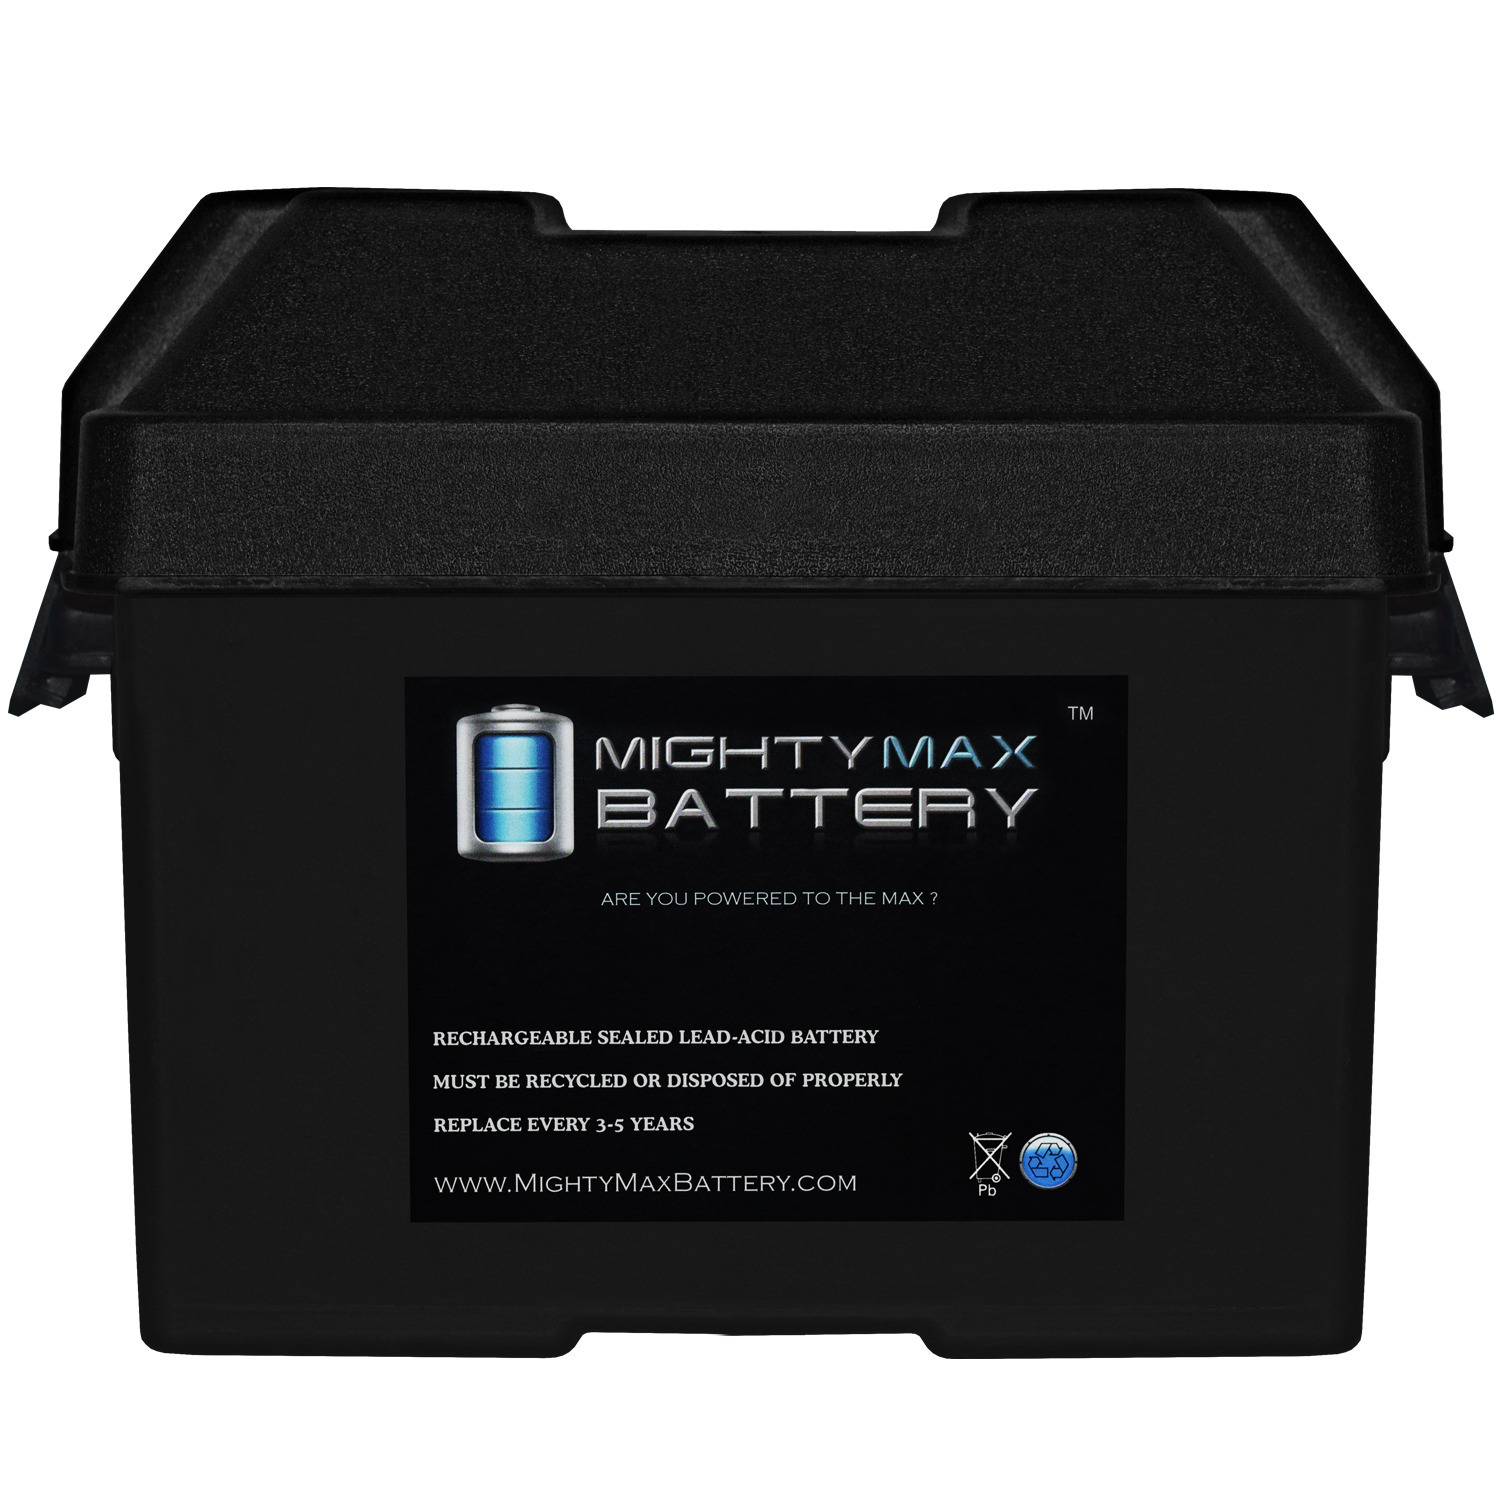 Group 24 Battery Box for Automotive, Marine, and RV Batteries - 1